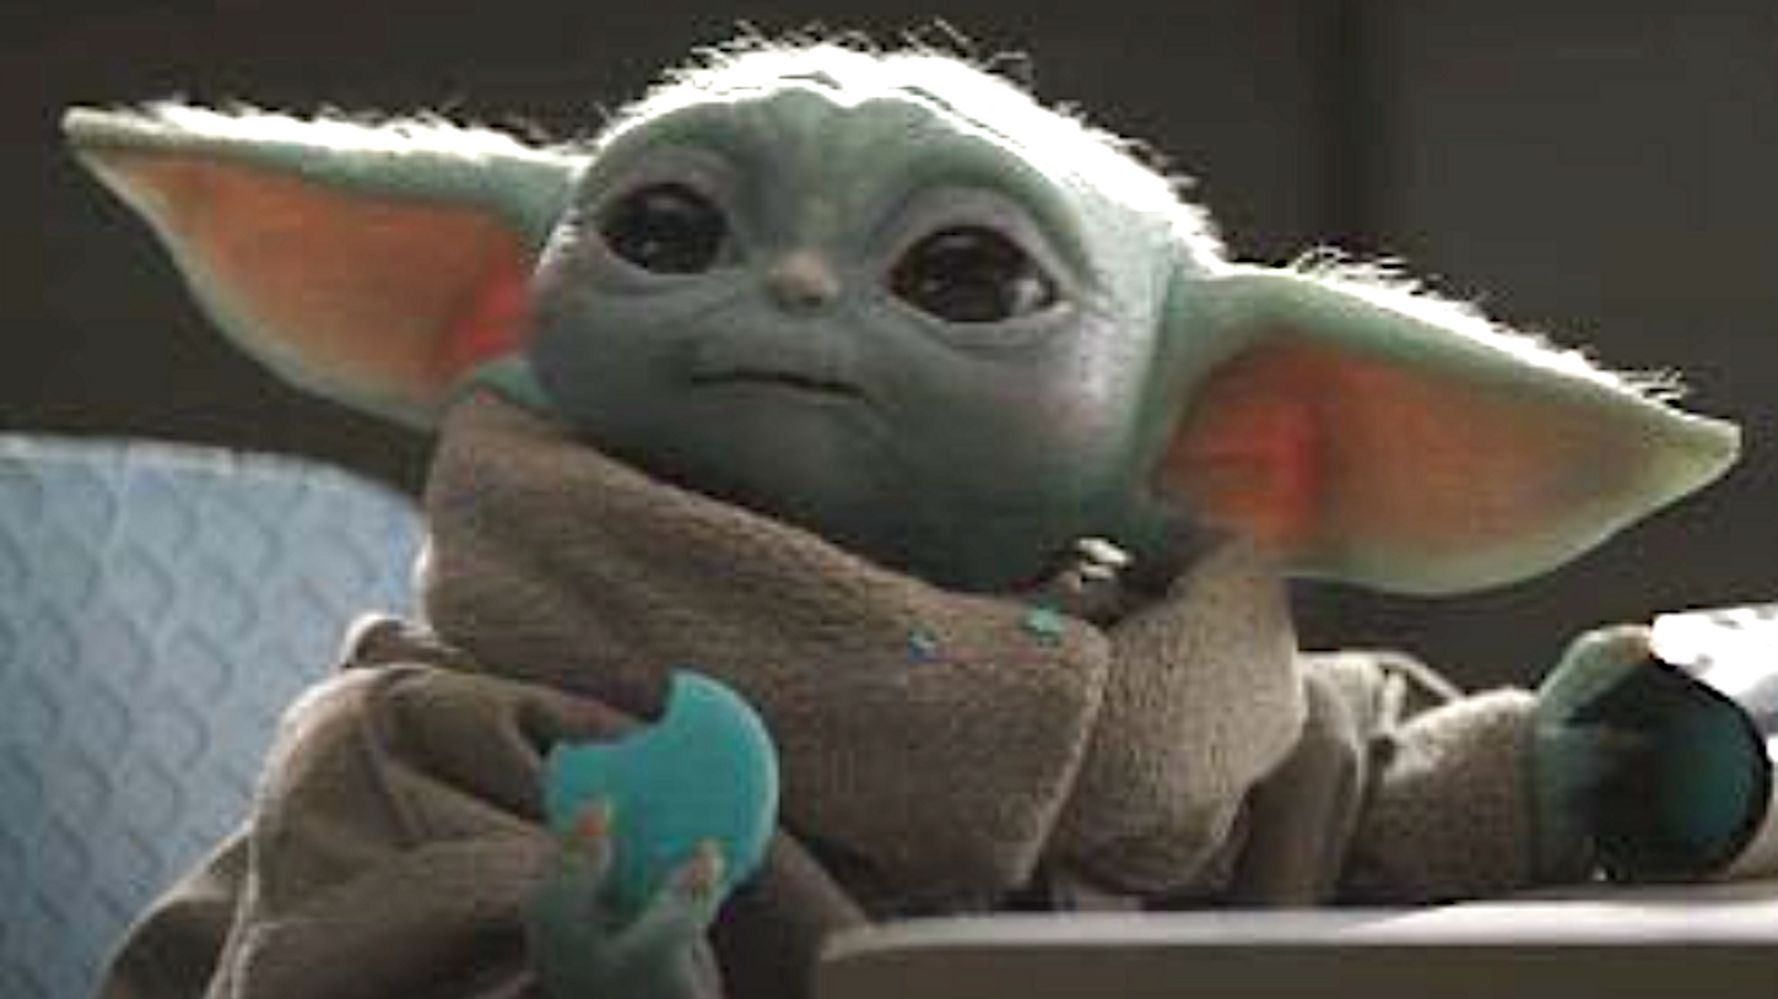 Baby Yoda Eating A Macaron On 'The Mandalorian' Is 'Too Adorable'